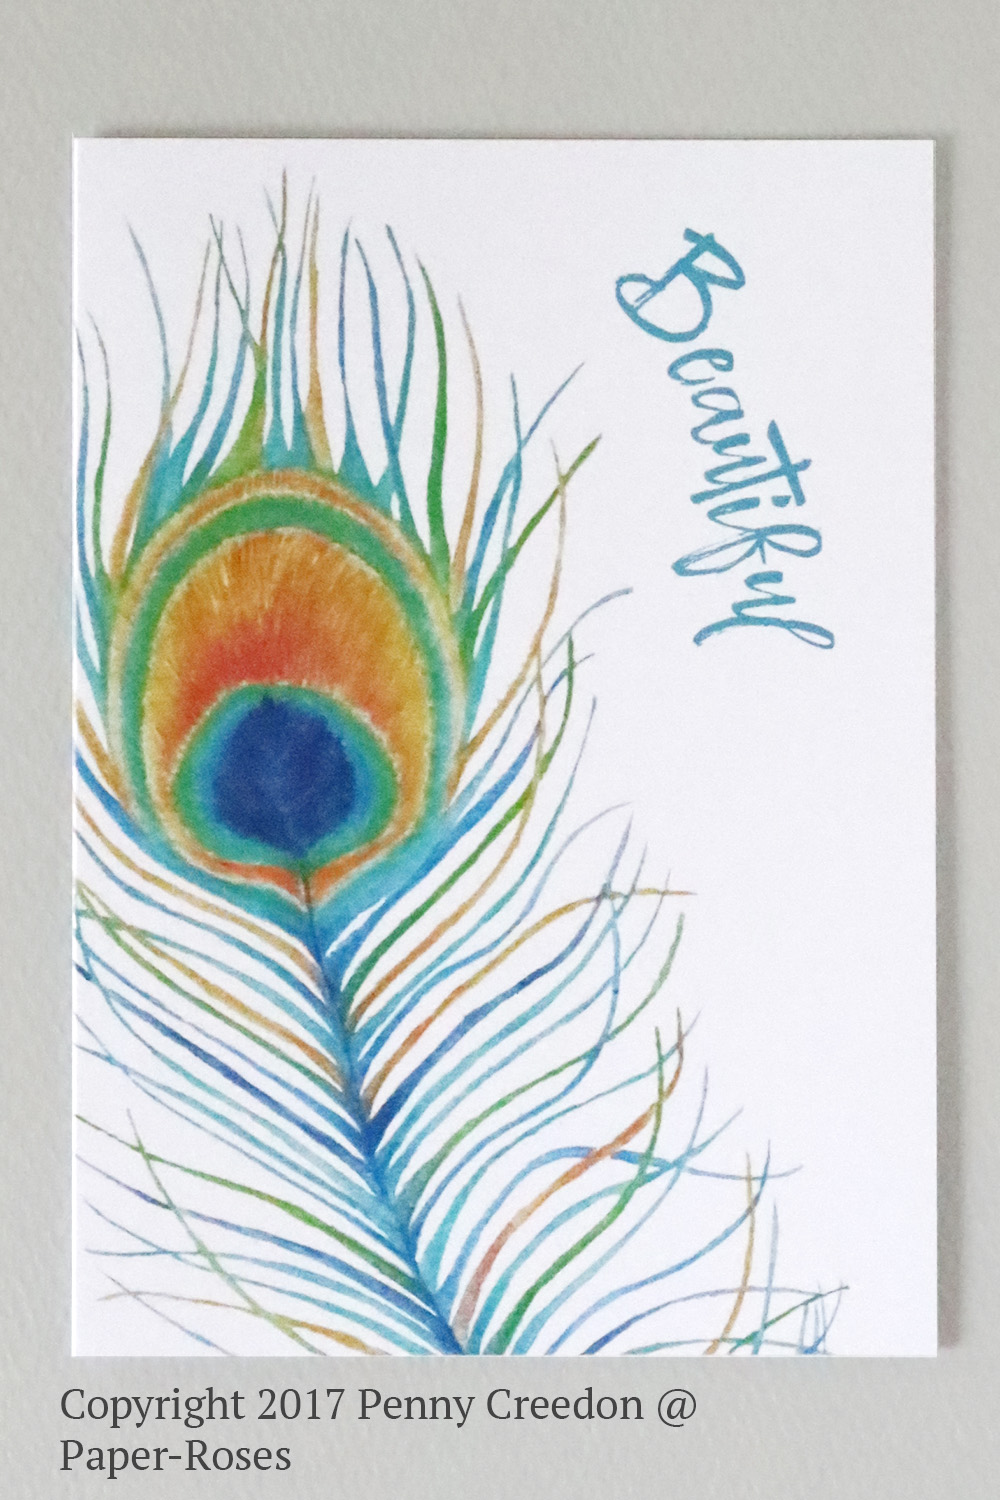 Paper-Roses | Greetings Cards | Peacock feather card